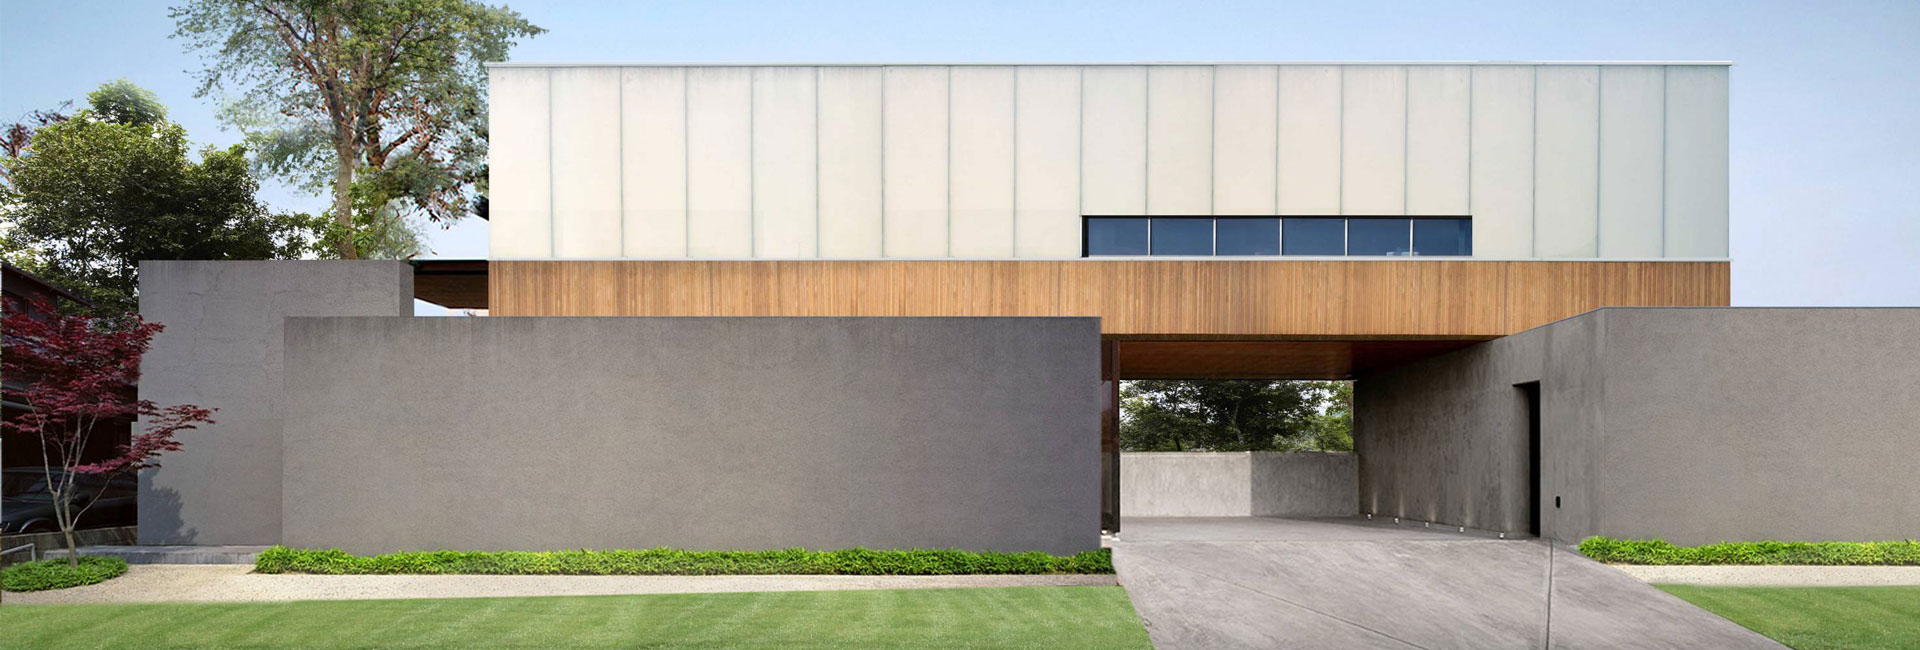 WolfArchitects-FeaturedProject-The-Frosted-Glass-House-HeaderSlider